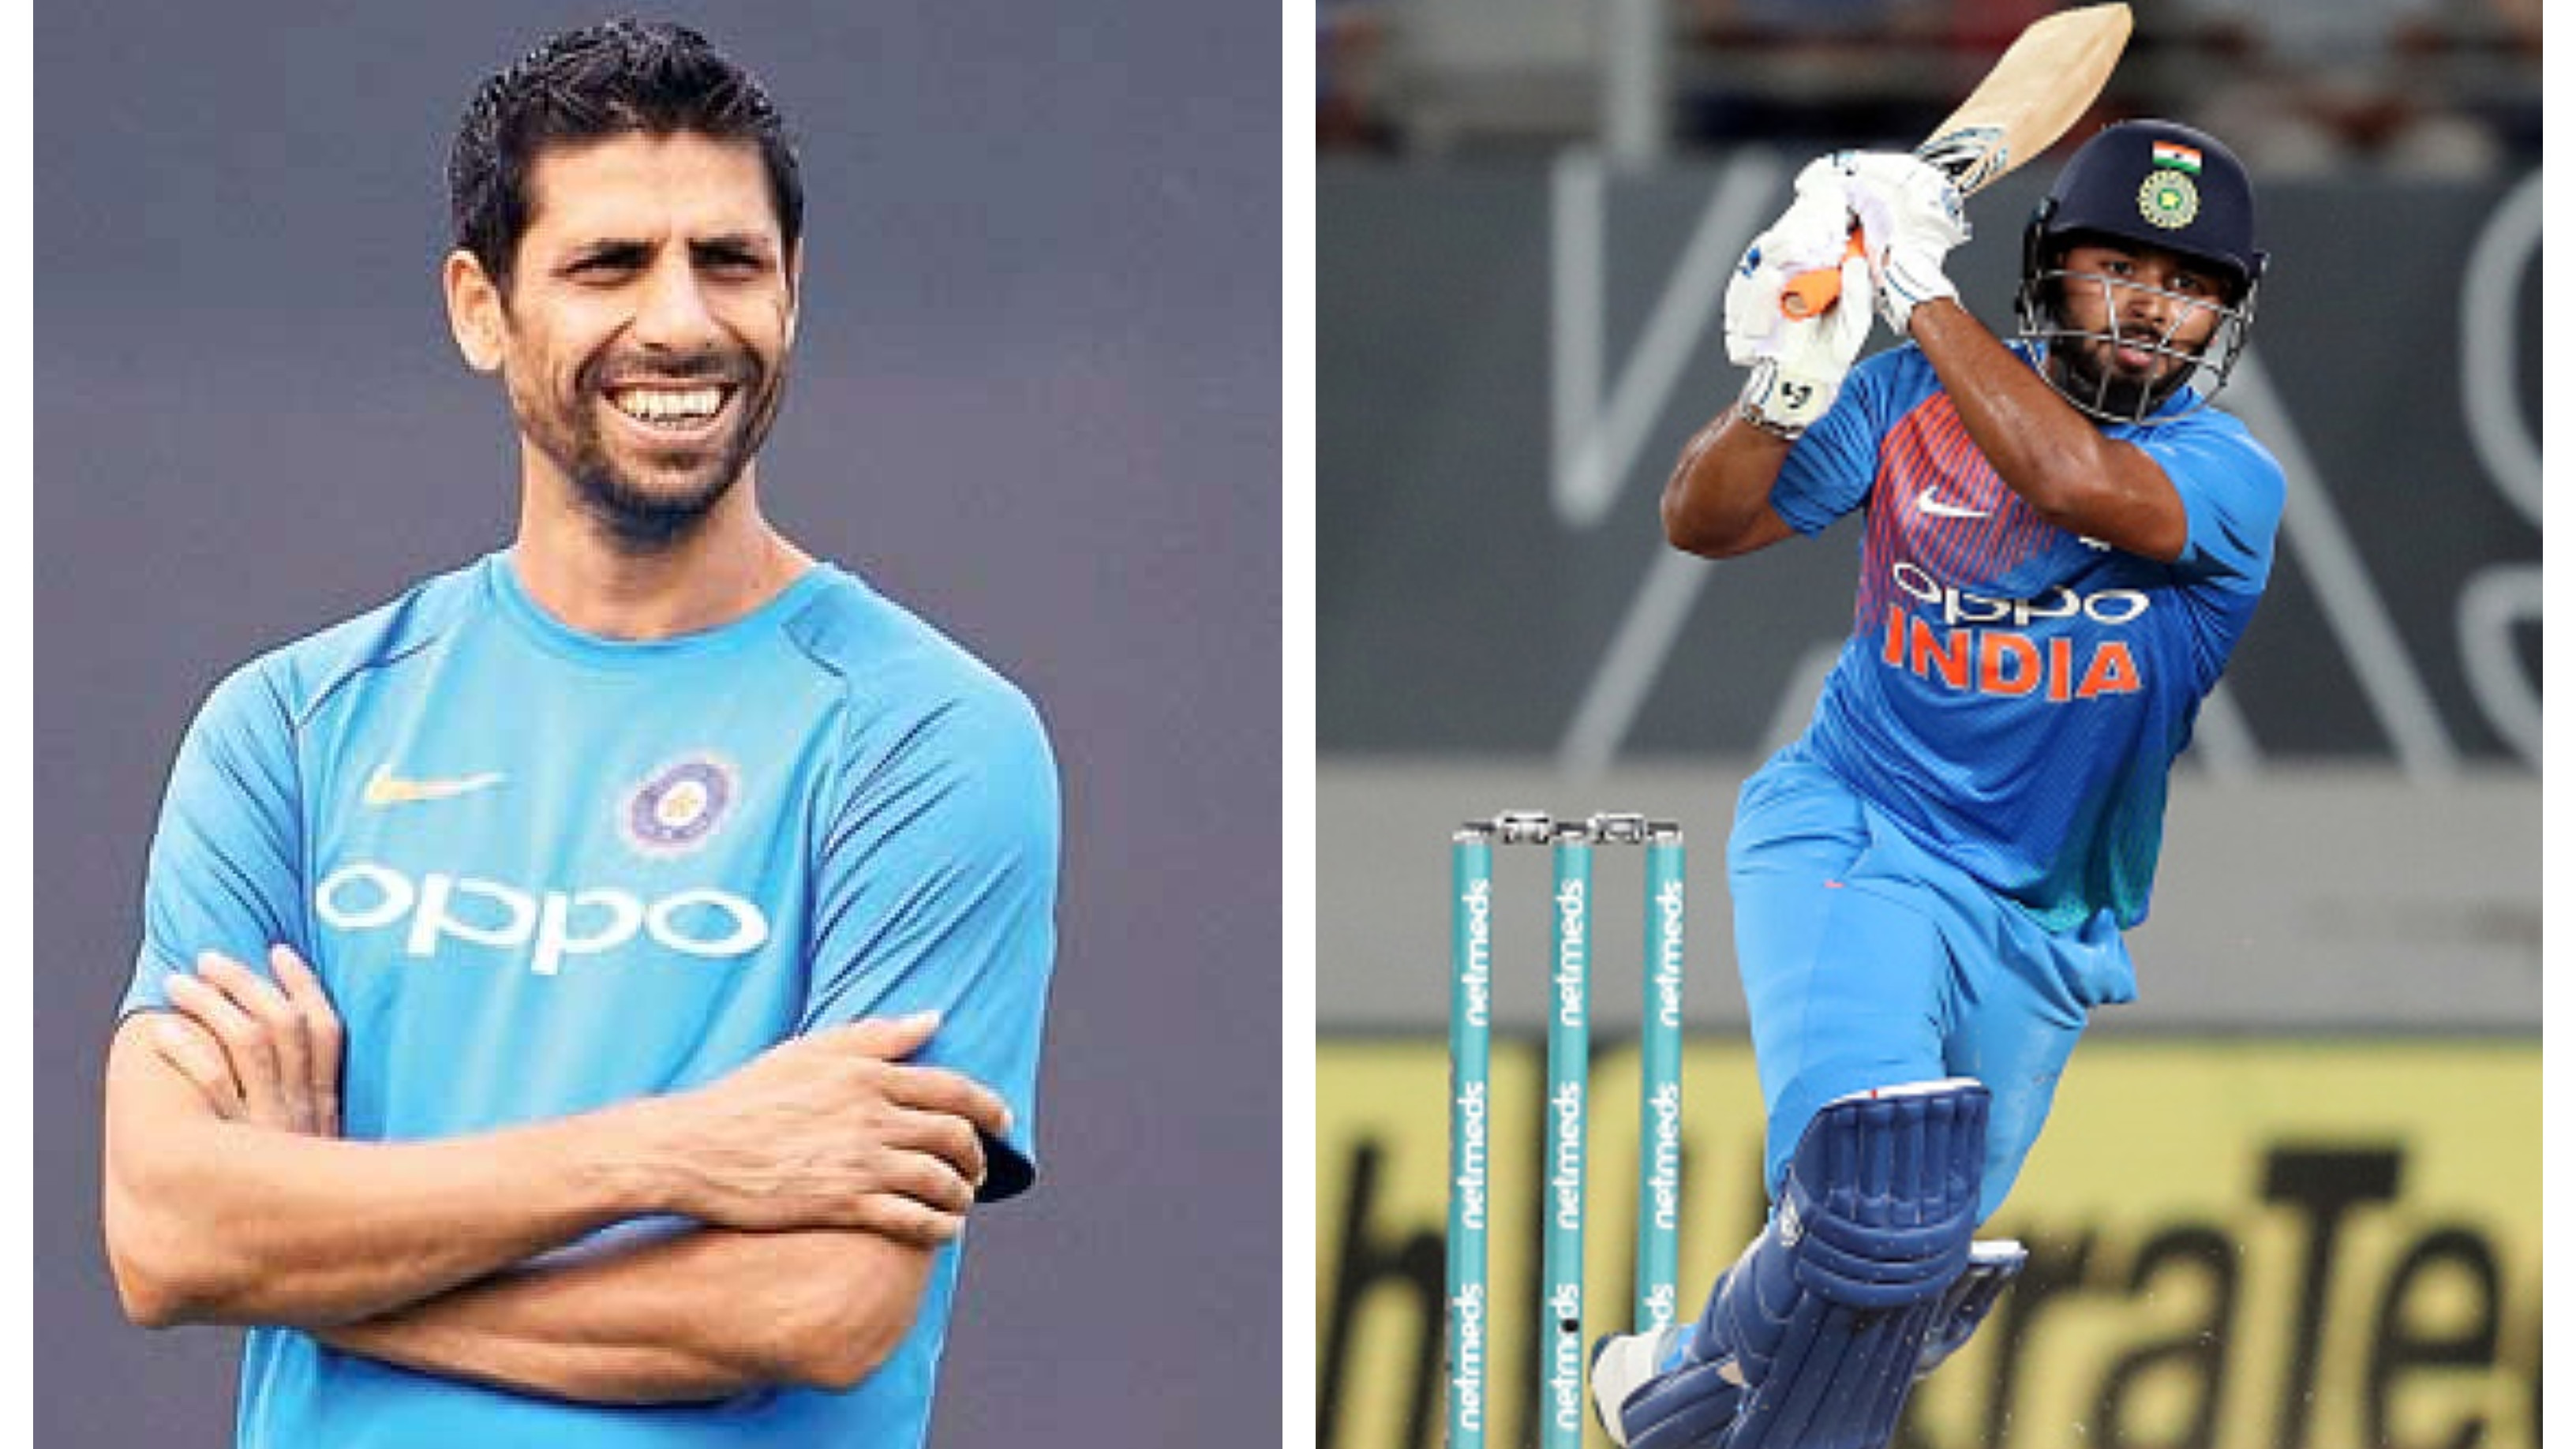 Nehra bats for Rishabh Pant's inclusion in India's World Cup squad with 5 reasons